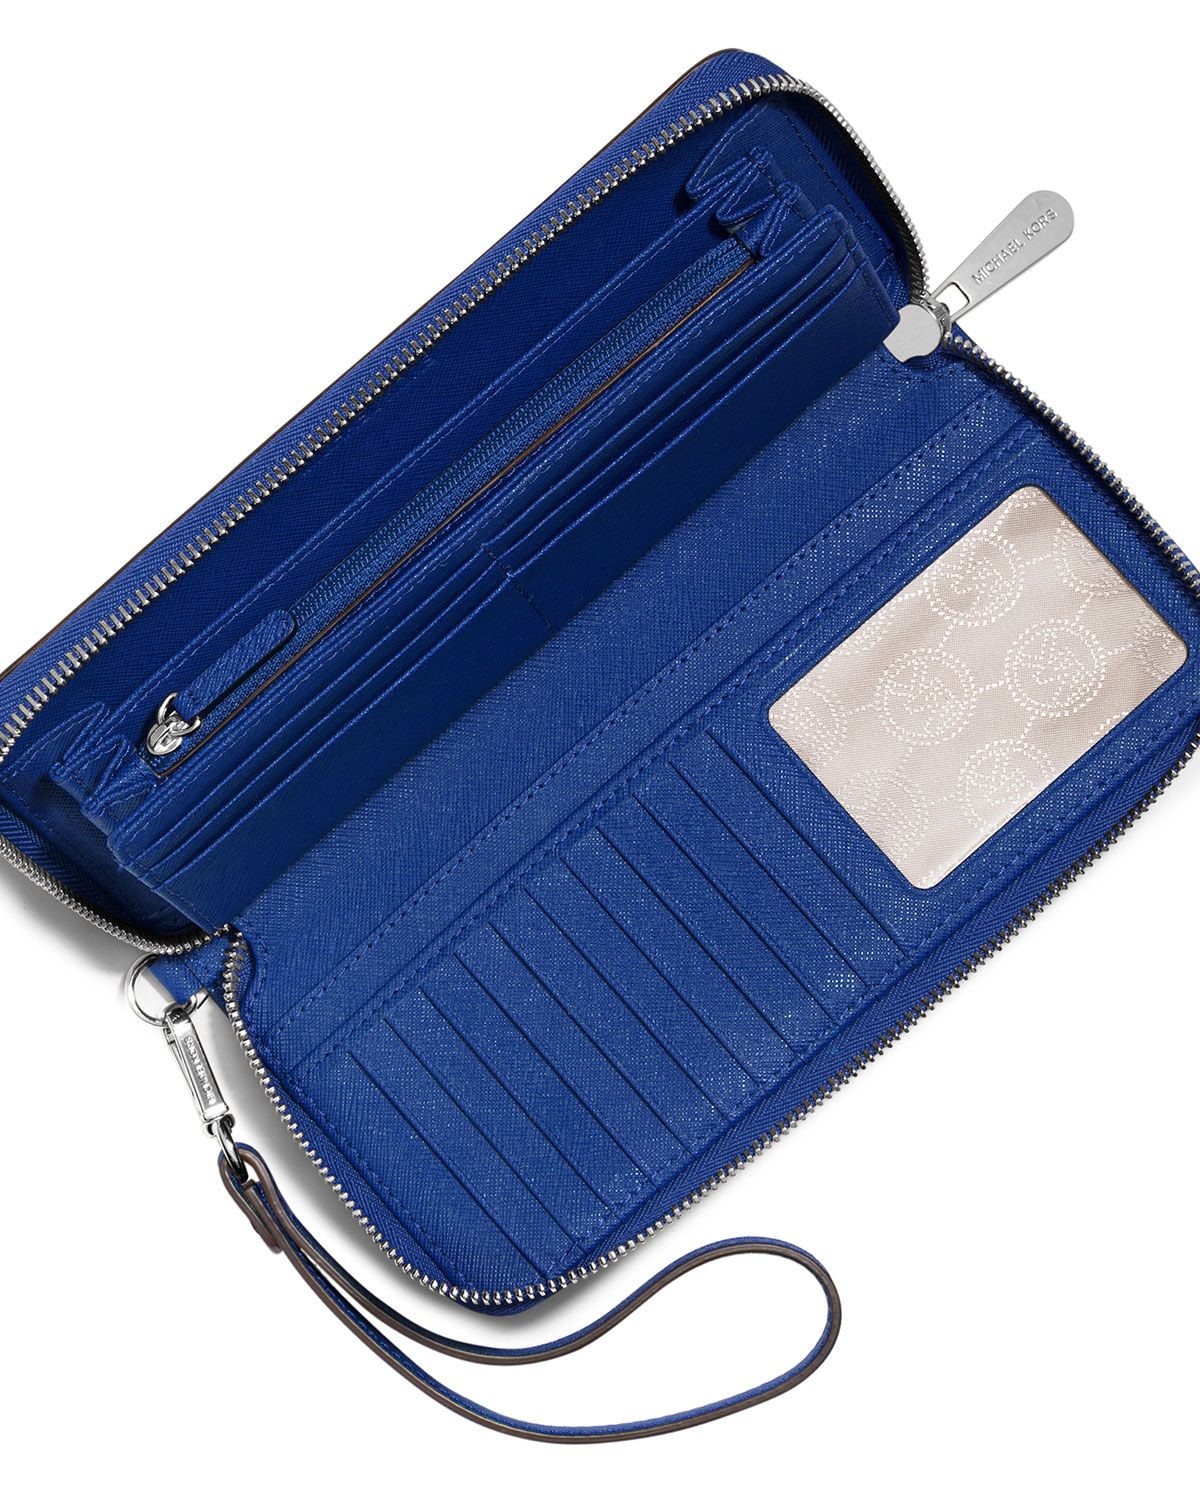 46f14f6920c1 MICHAEL Michael Kors Jet Set Travel Continental Wristlet Wallet, Electric  Blue